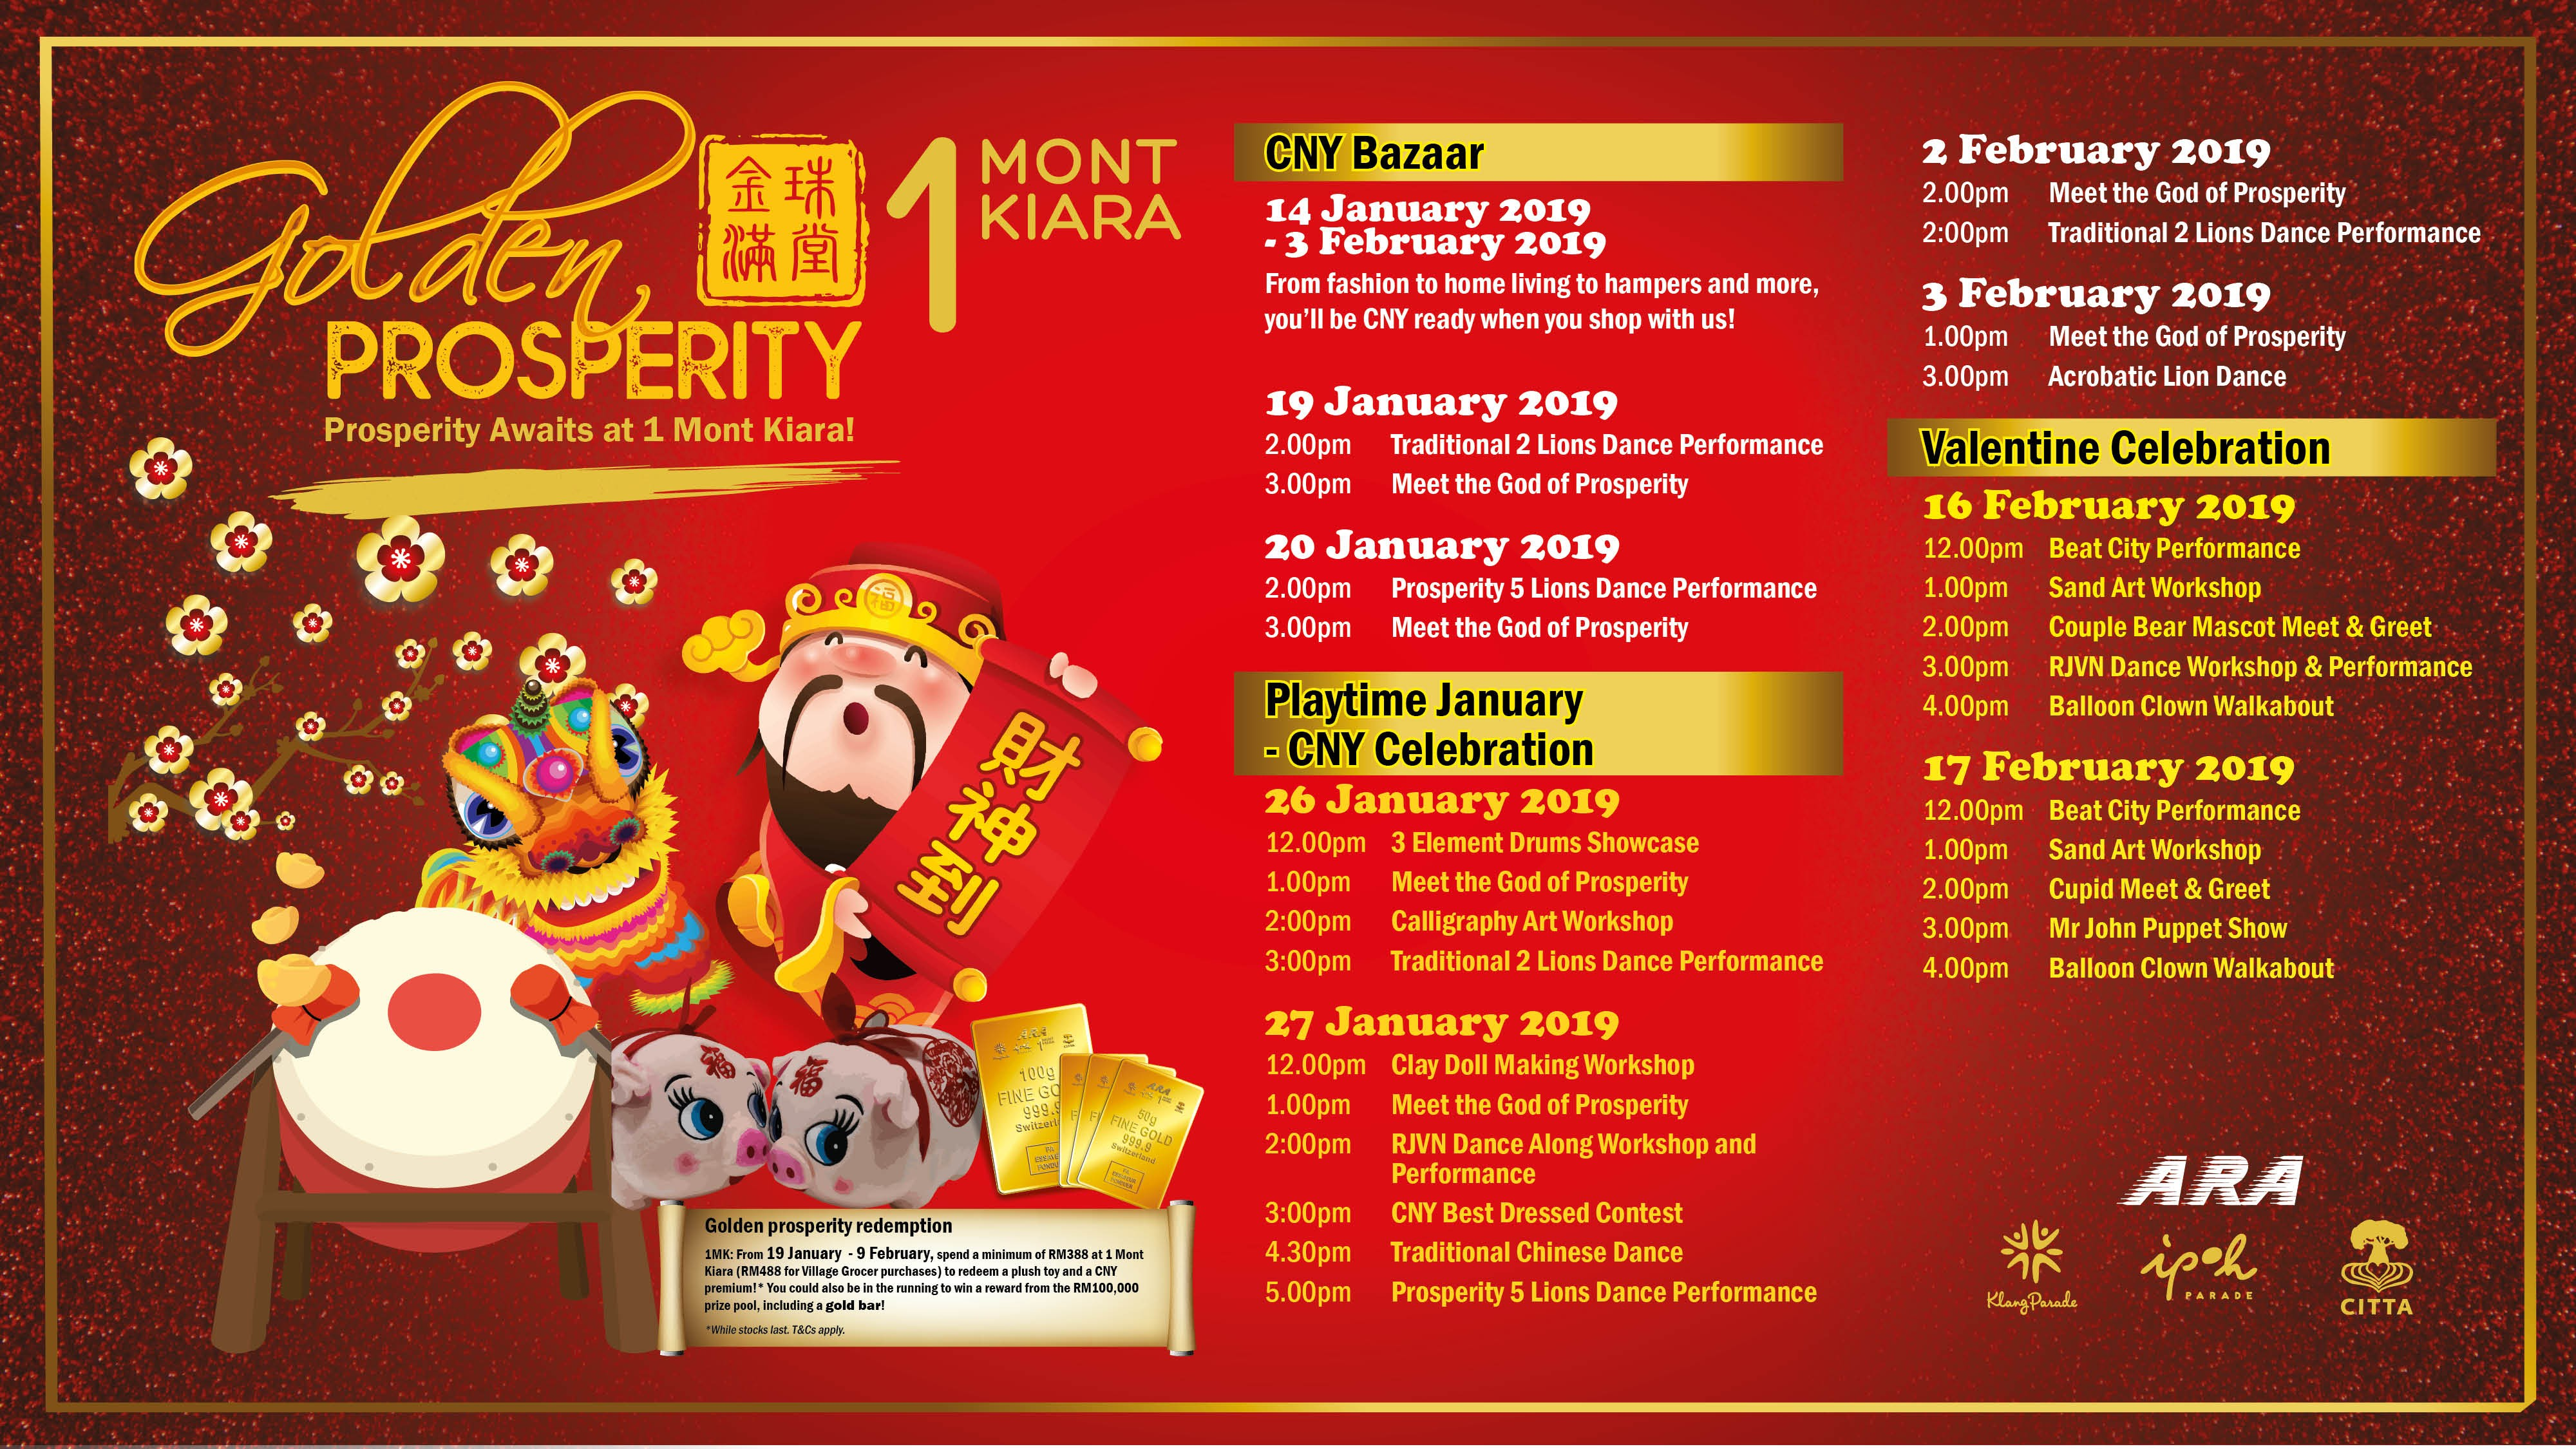 STORE GUIDE Discover a list of stores in 1 Mont Kiara